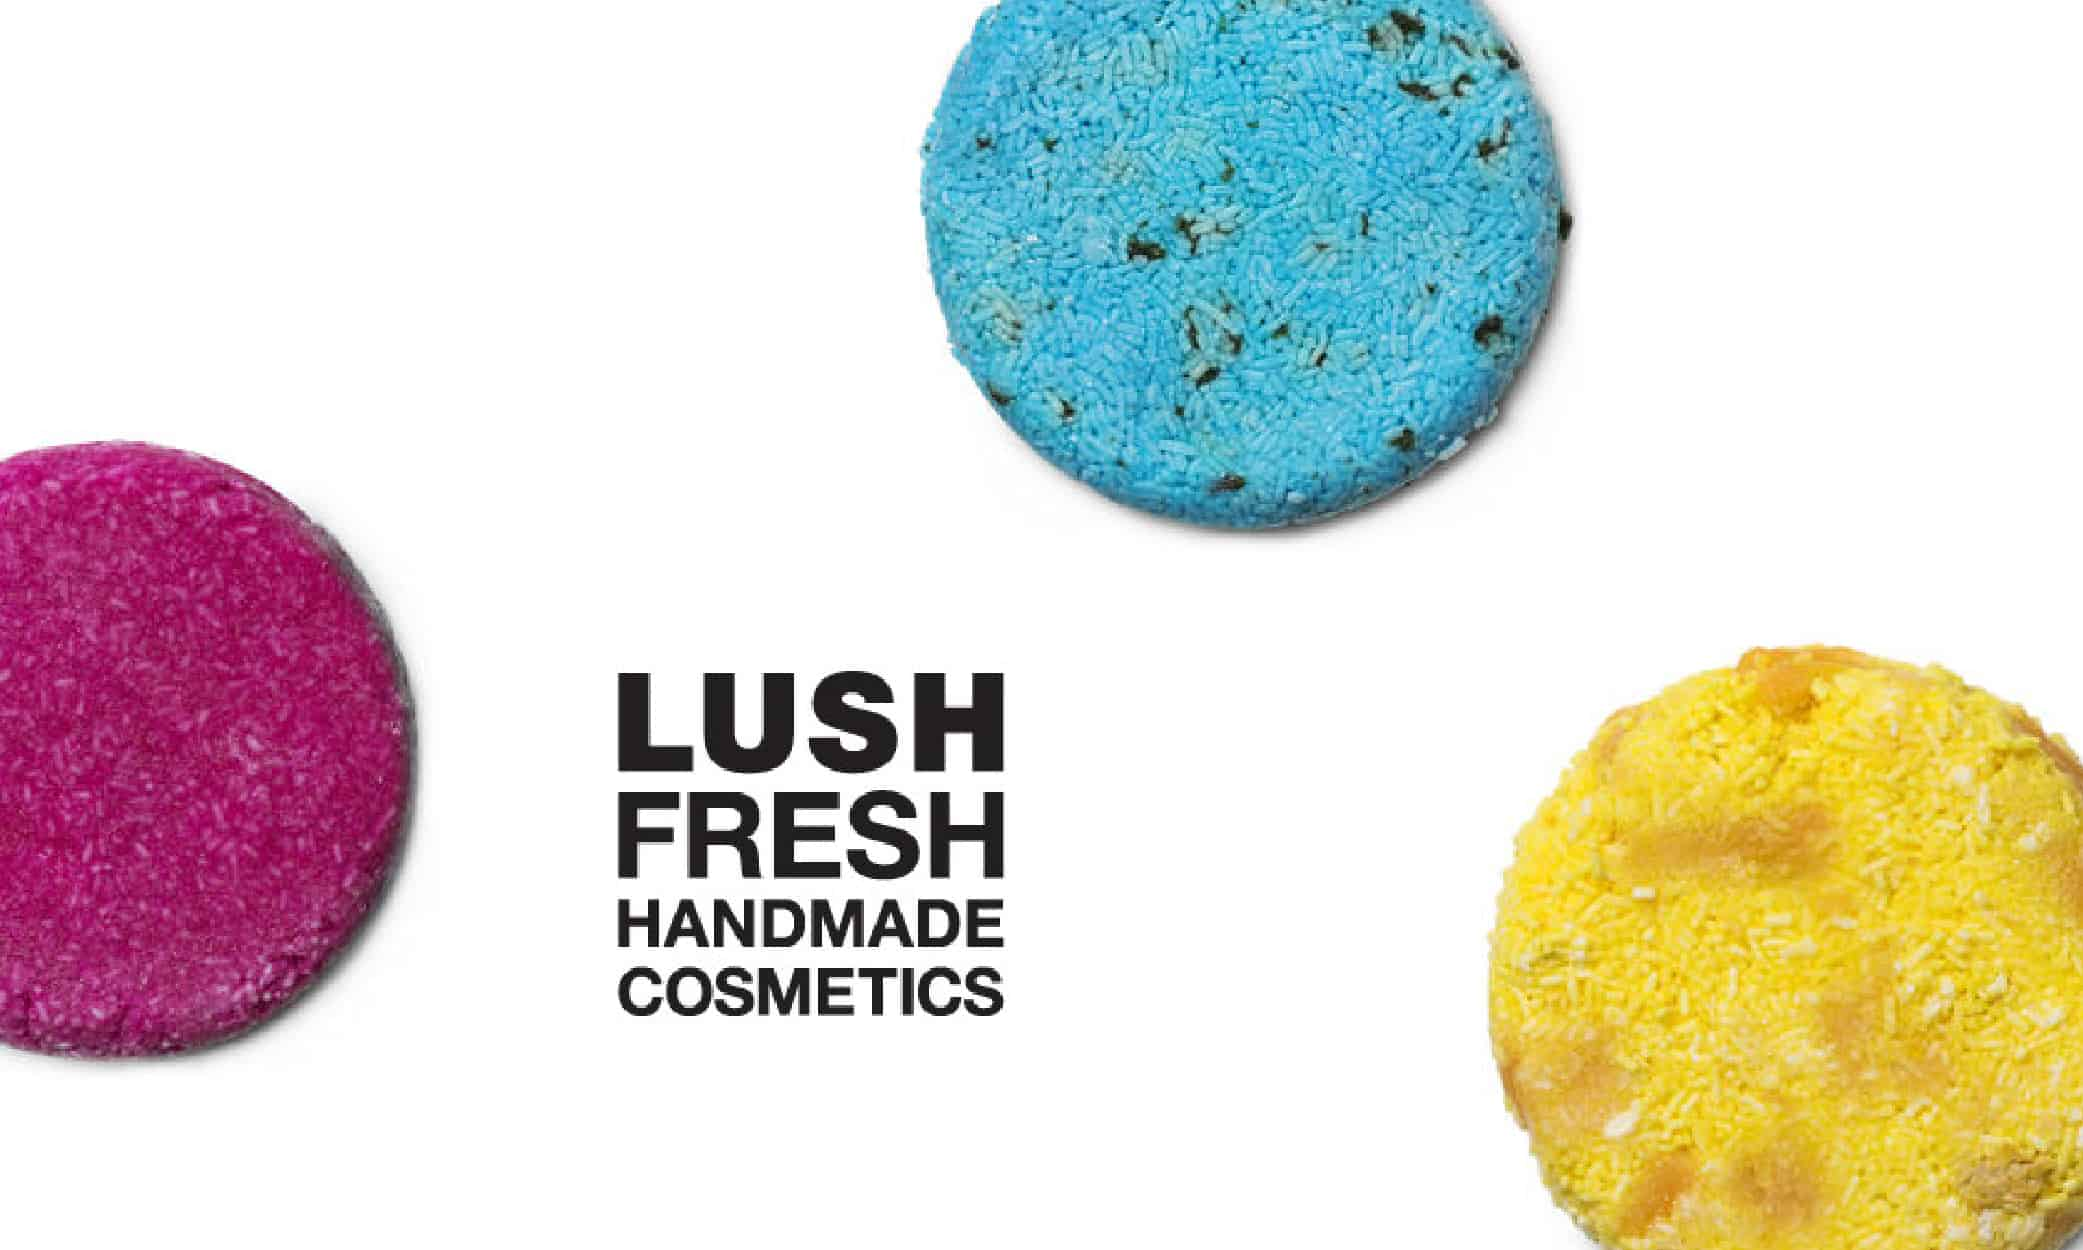 Three Lush Fresh Handmade Cosmetics in the colors of Blue, Pink and Yellow